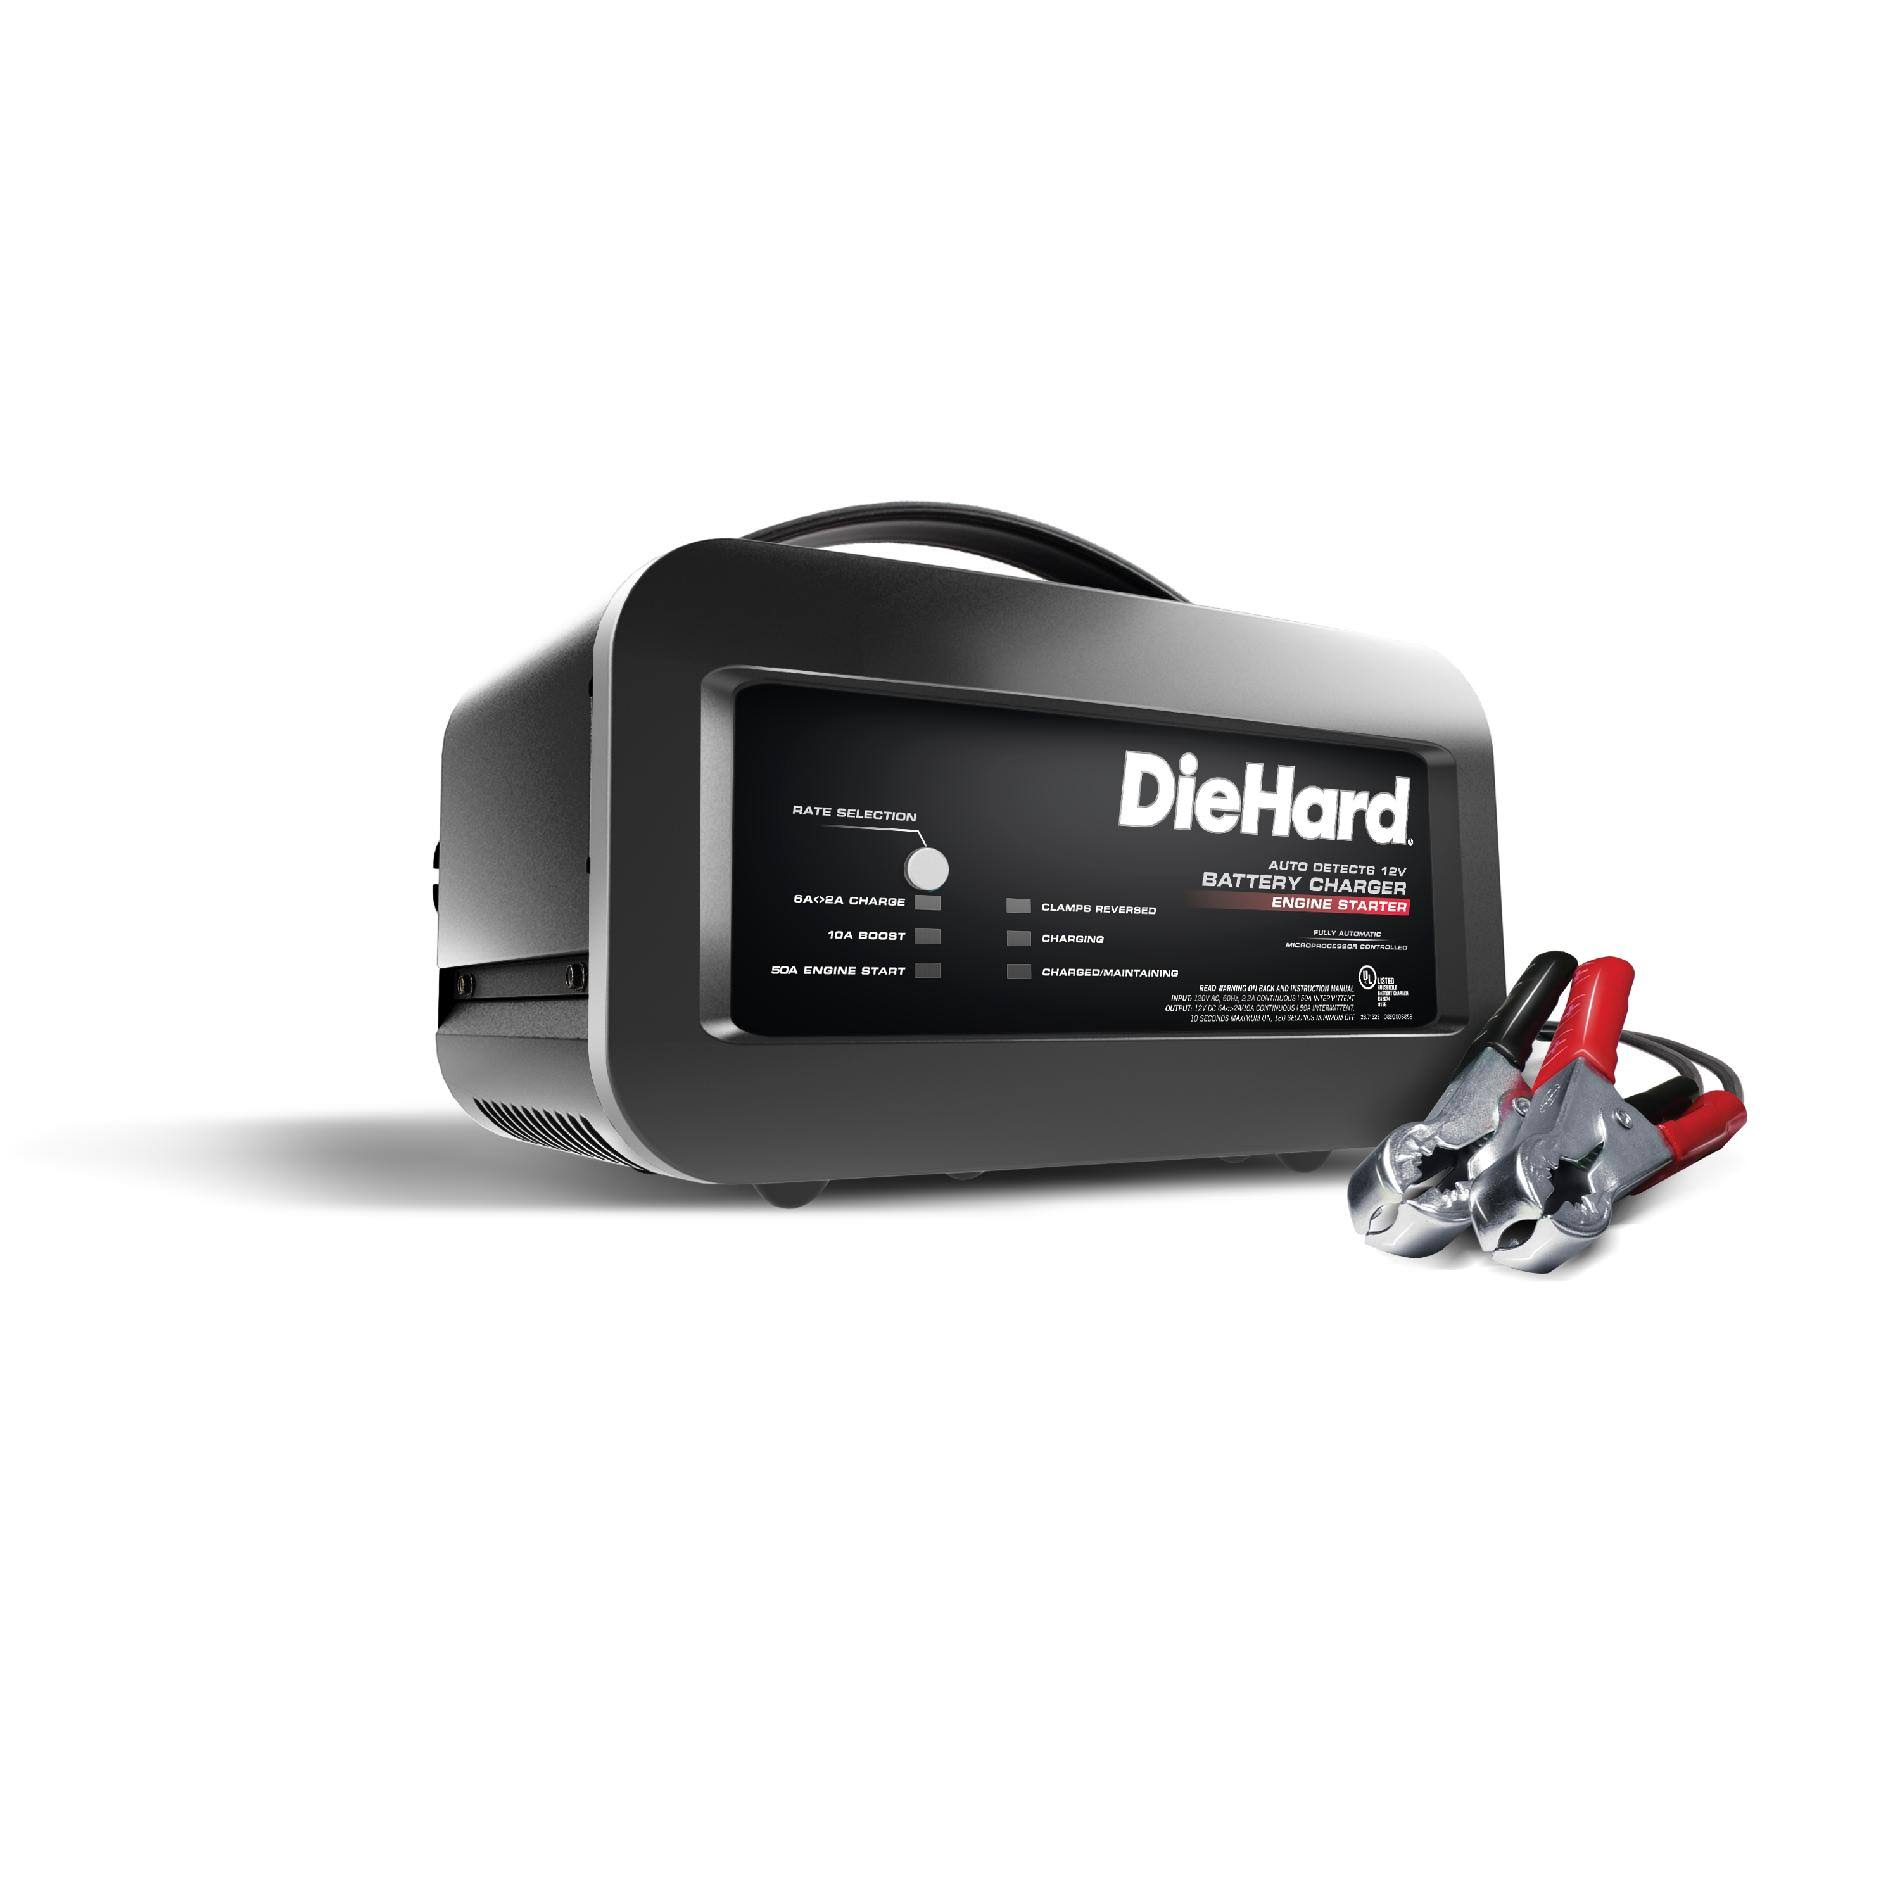 Diehard Automatic Battery Charger - 12V, 10 Amp